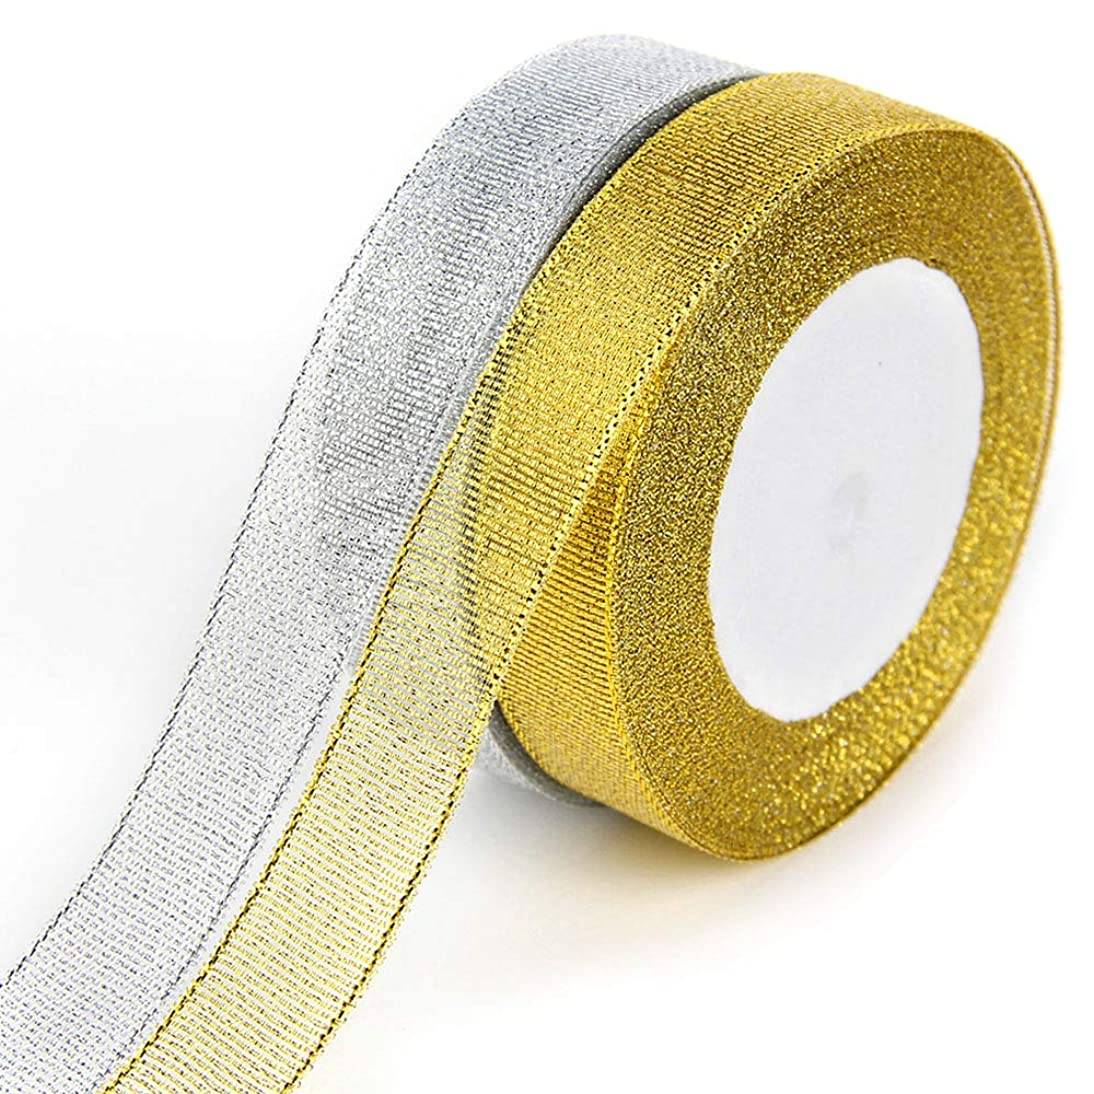 Gift Wrap Ribbons Organza Ribbons Glitter Trimmings Decorative Ribbons 2 Rolls- 24 Yard- 0.78 Inch Wide for Arts Crafts and Gift Wrapping (Gold & Silver) dyhb416427485021